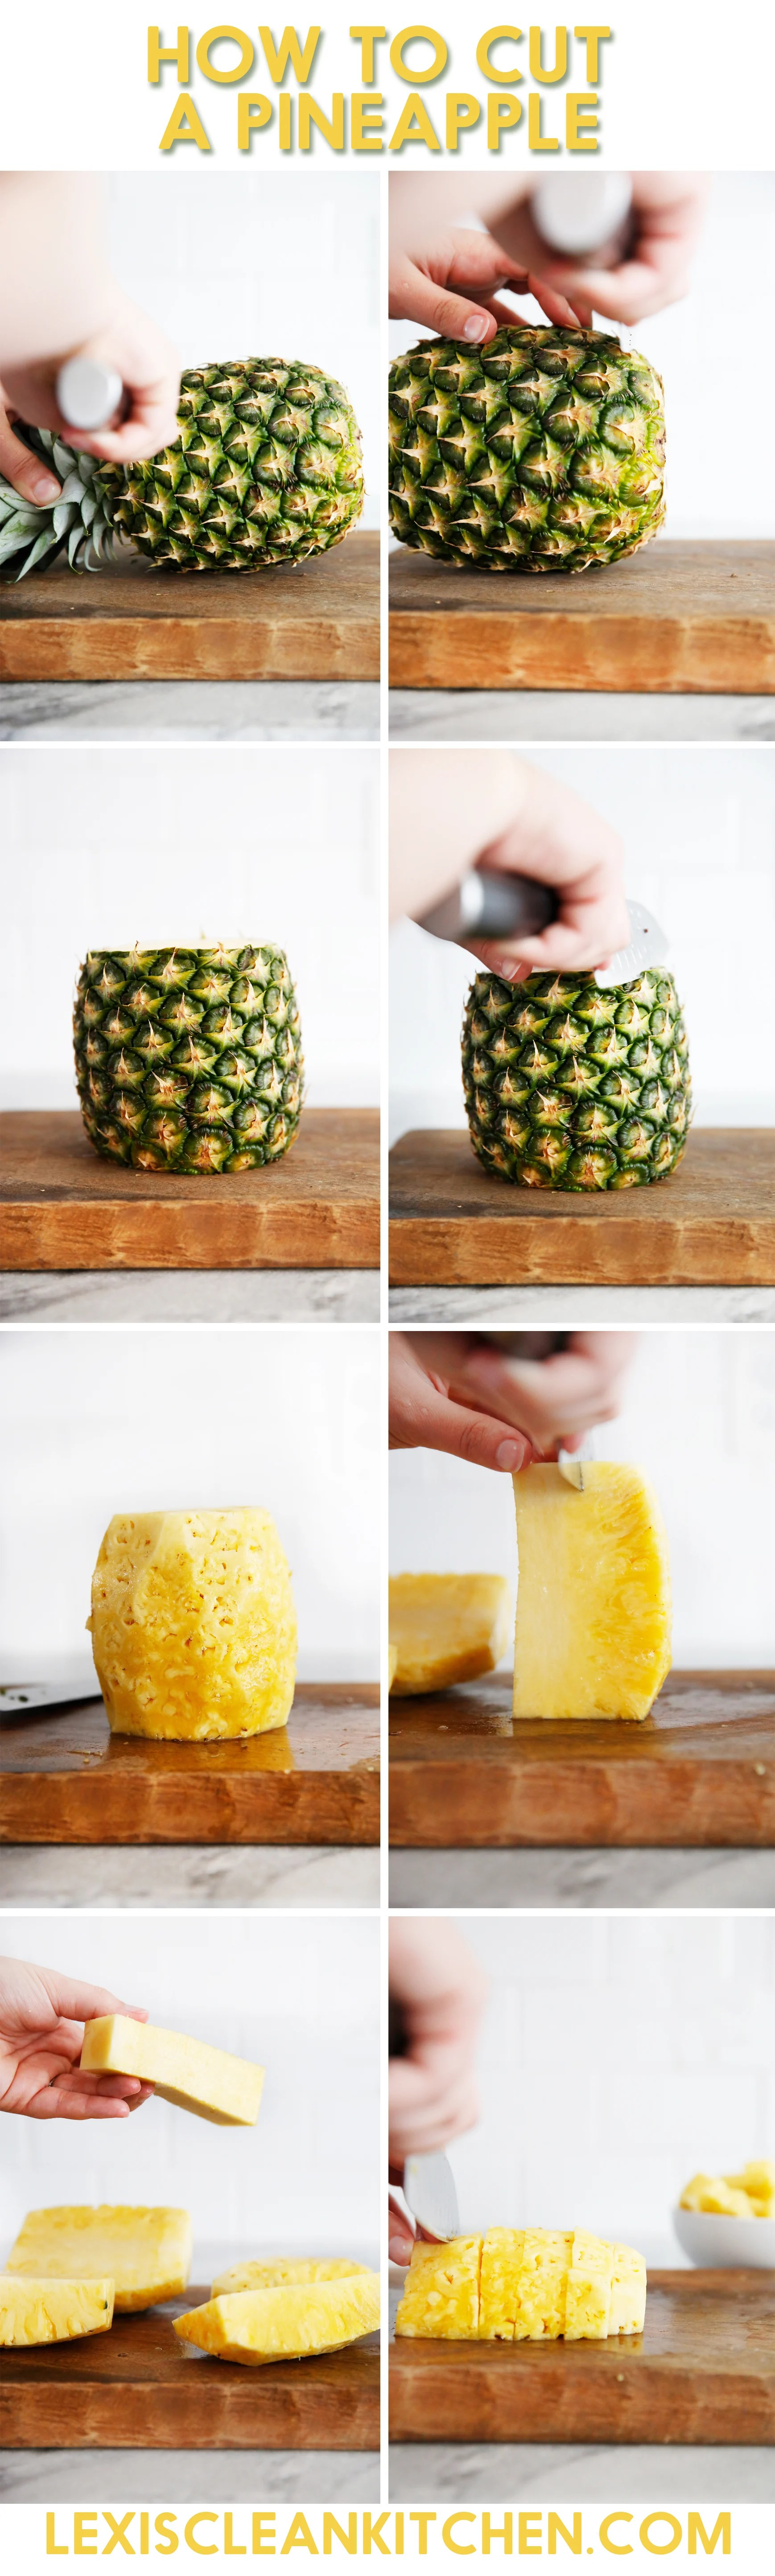 How to Cut a Pineapple (Step by Step Guide) - Lexi's Clean ...